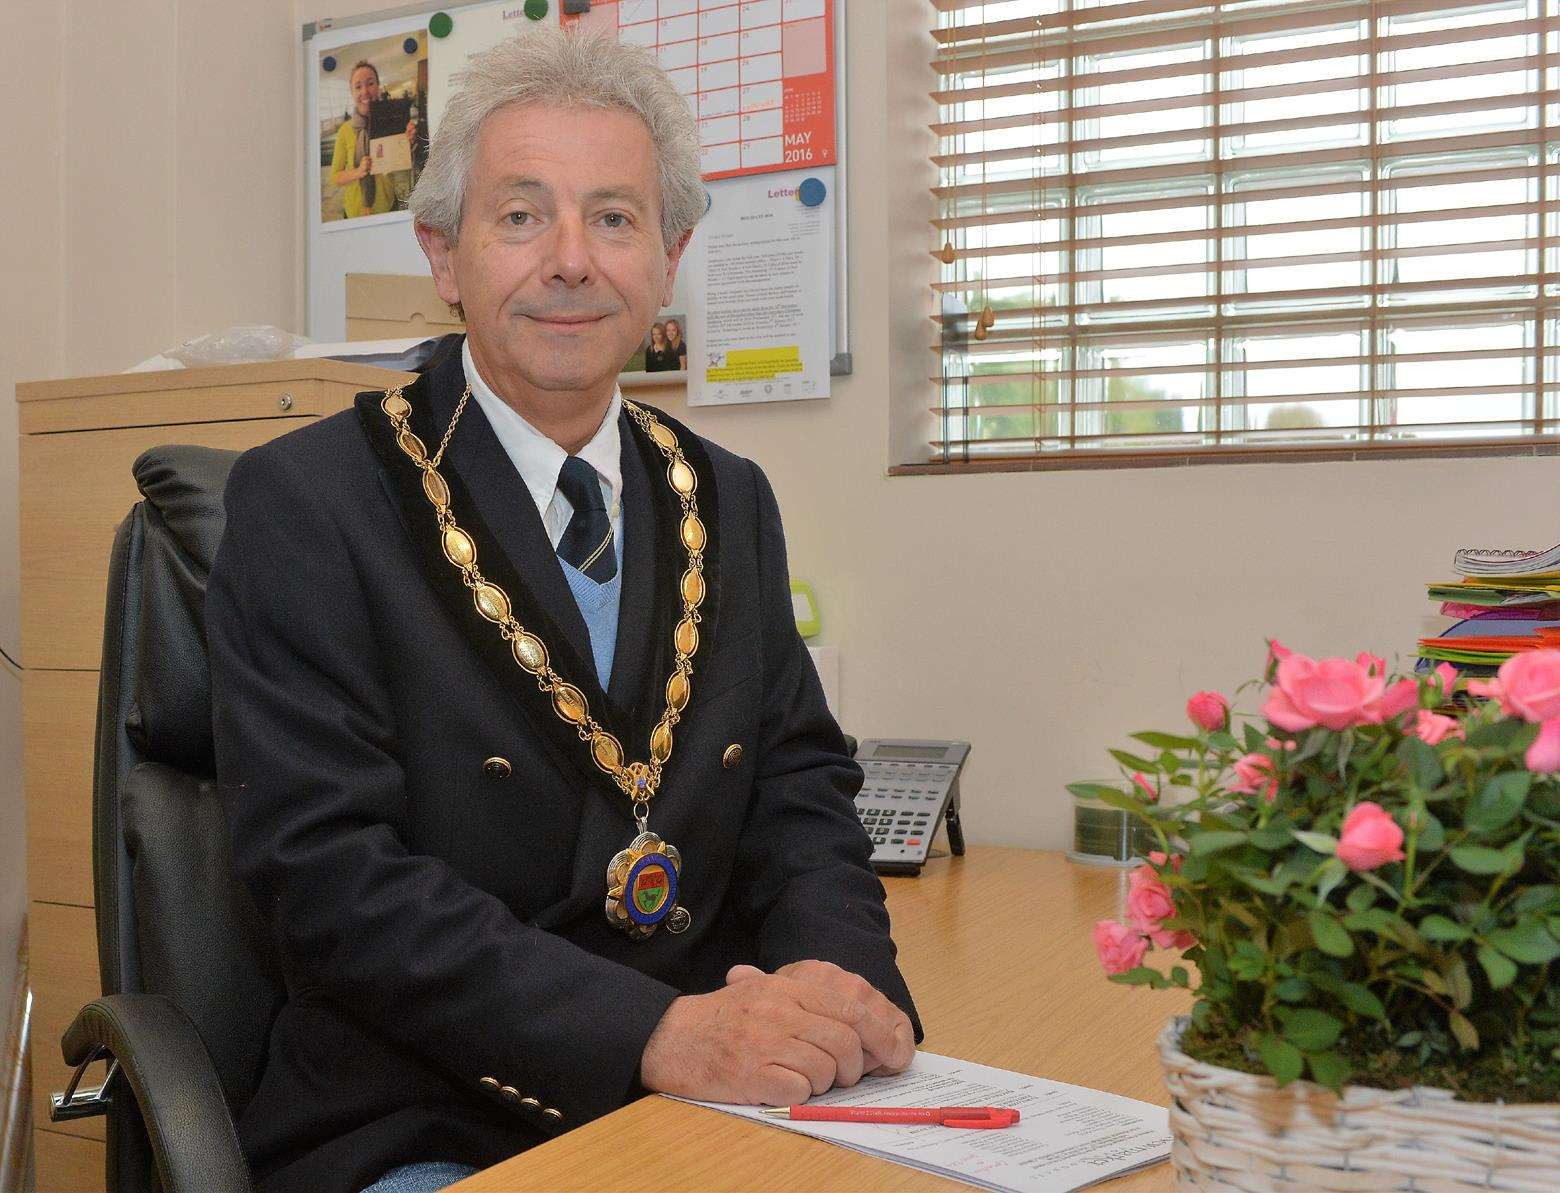 Former Newmarket mayor Andy Drummond said the bill for a West Suffolk mayor could be up to £800,000